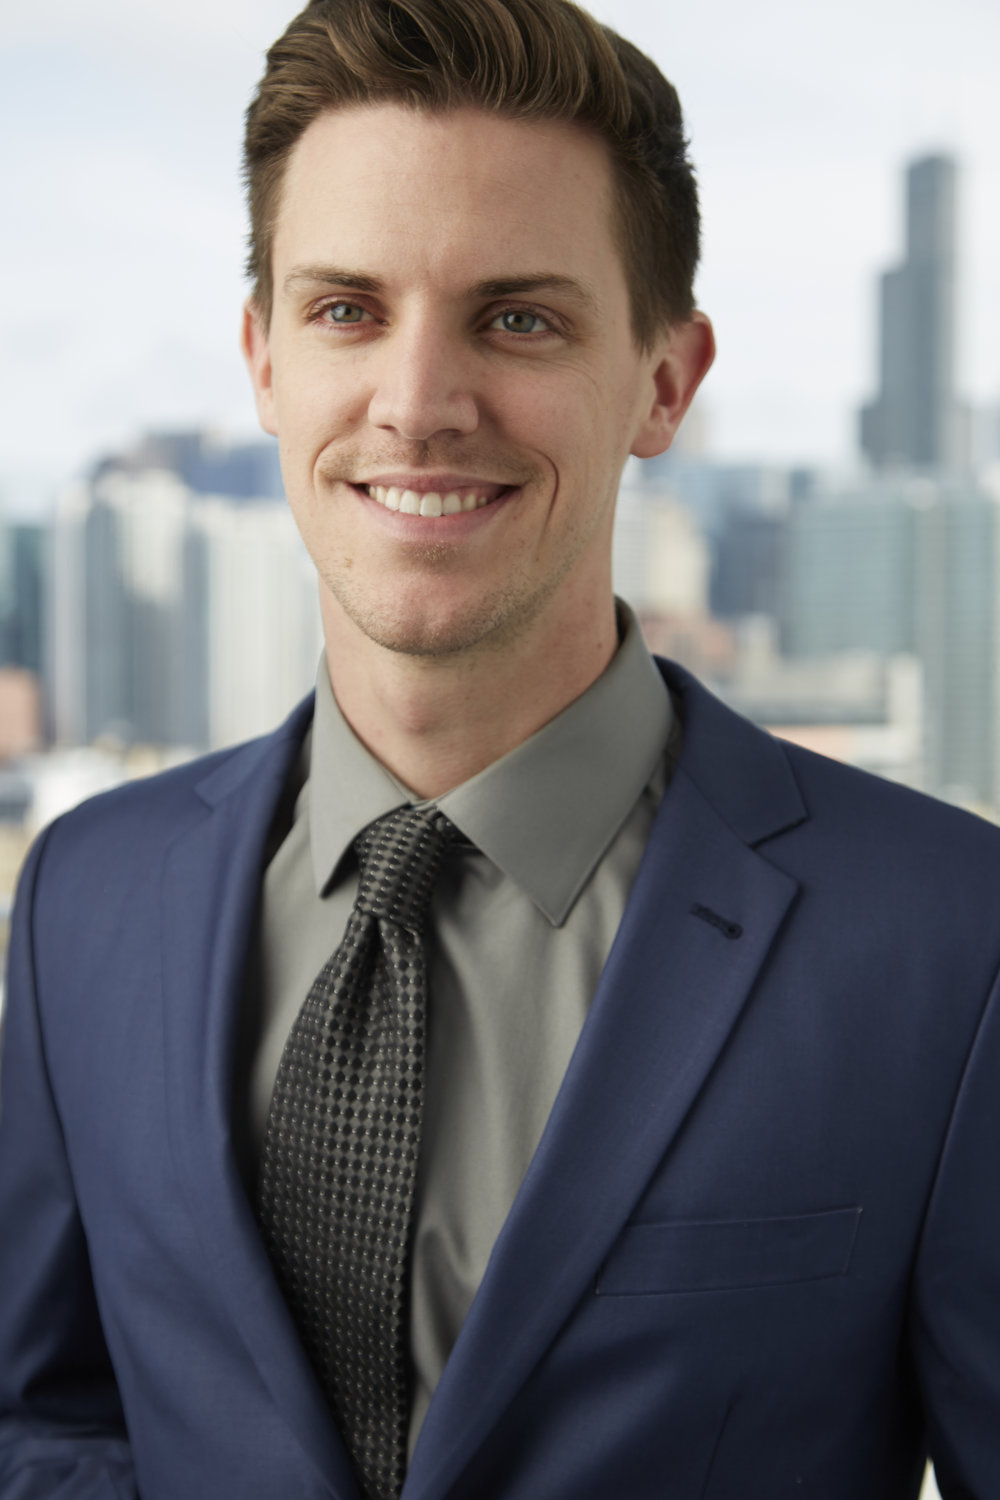 Caleb Butcher - Caleb is known for always going above and beyond for his clients. His unique approach to sales focuses on asking the right questions and doing his best to make sure he delivers. If you are looking for a top agent, look no further!